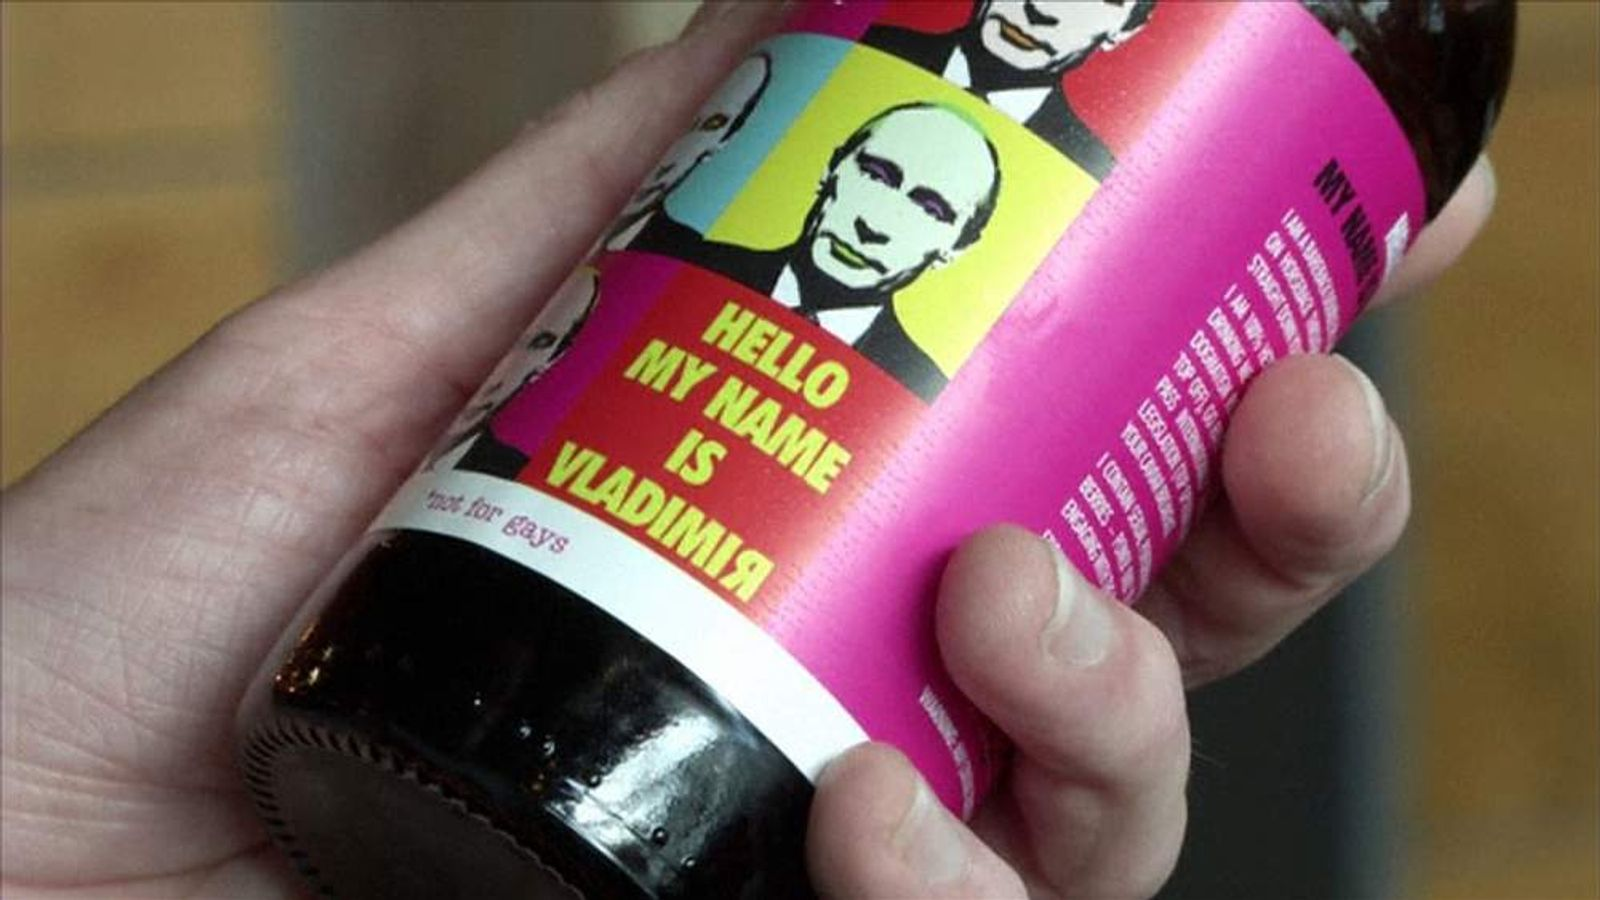 Scottish brewery makes Vladimir Beer